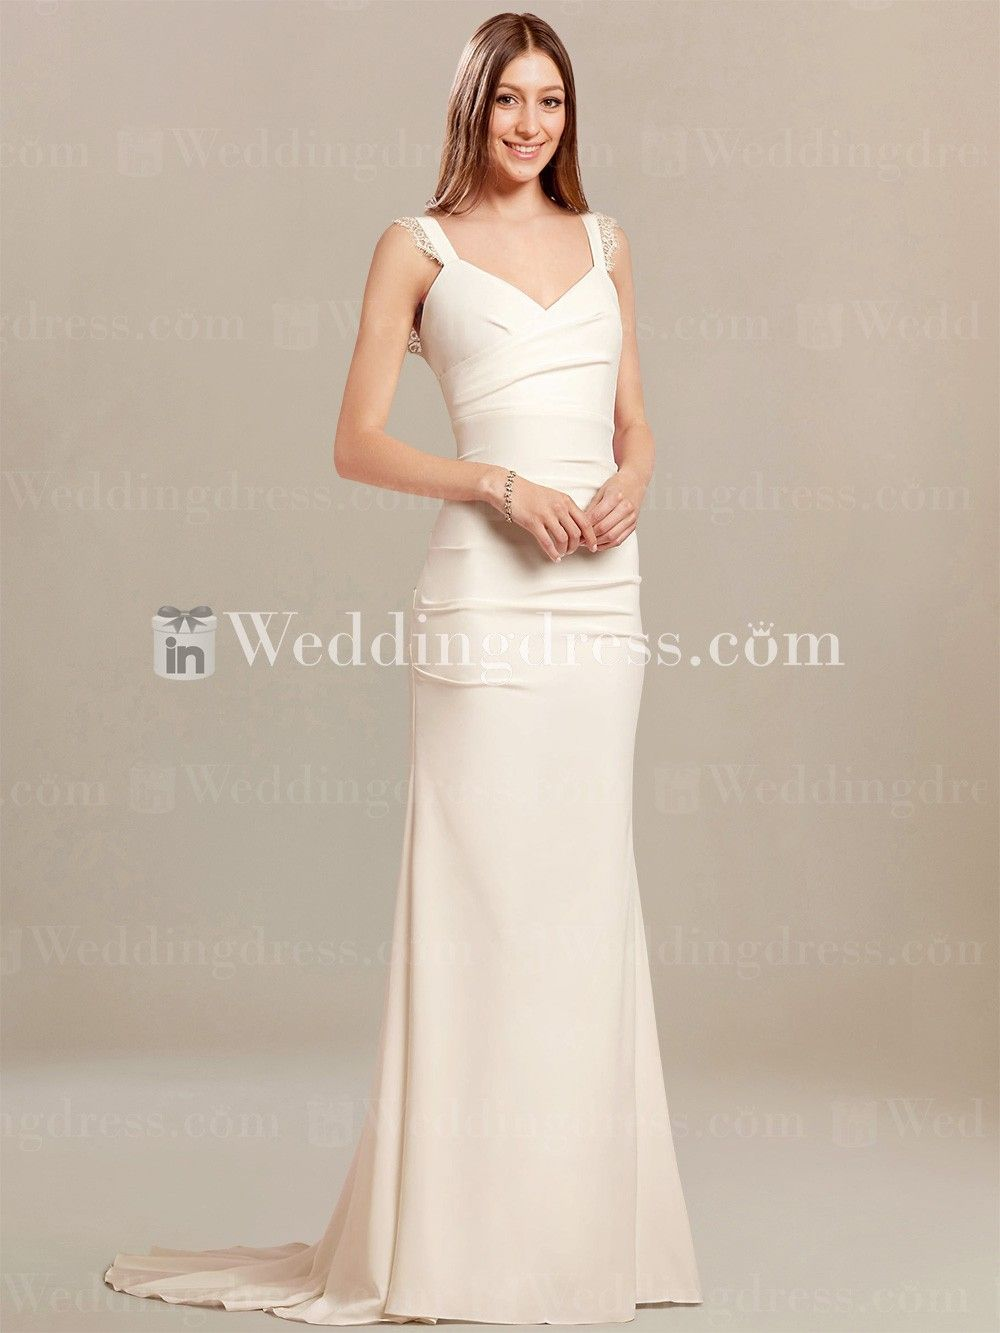 34ba34d8148ea Simple Wedding Dress Beach - Dress for Country Wedding Guest Check more at  http